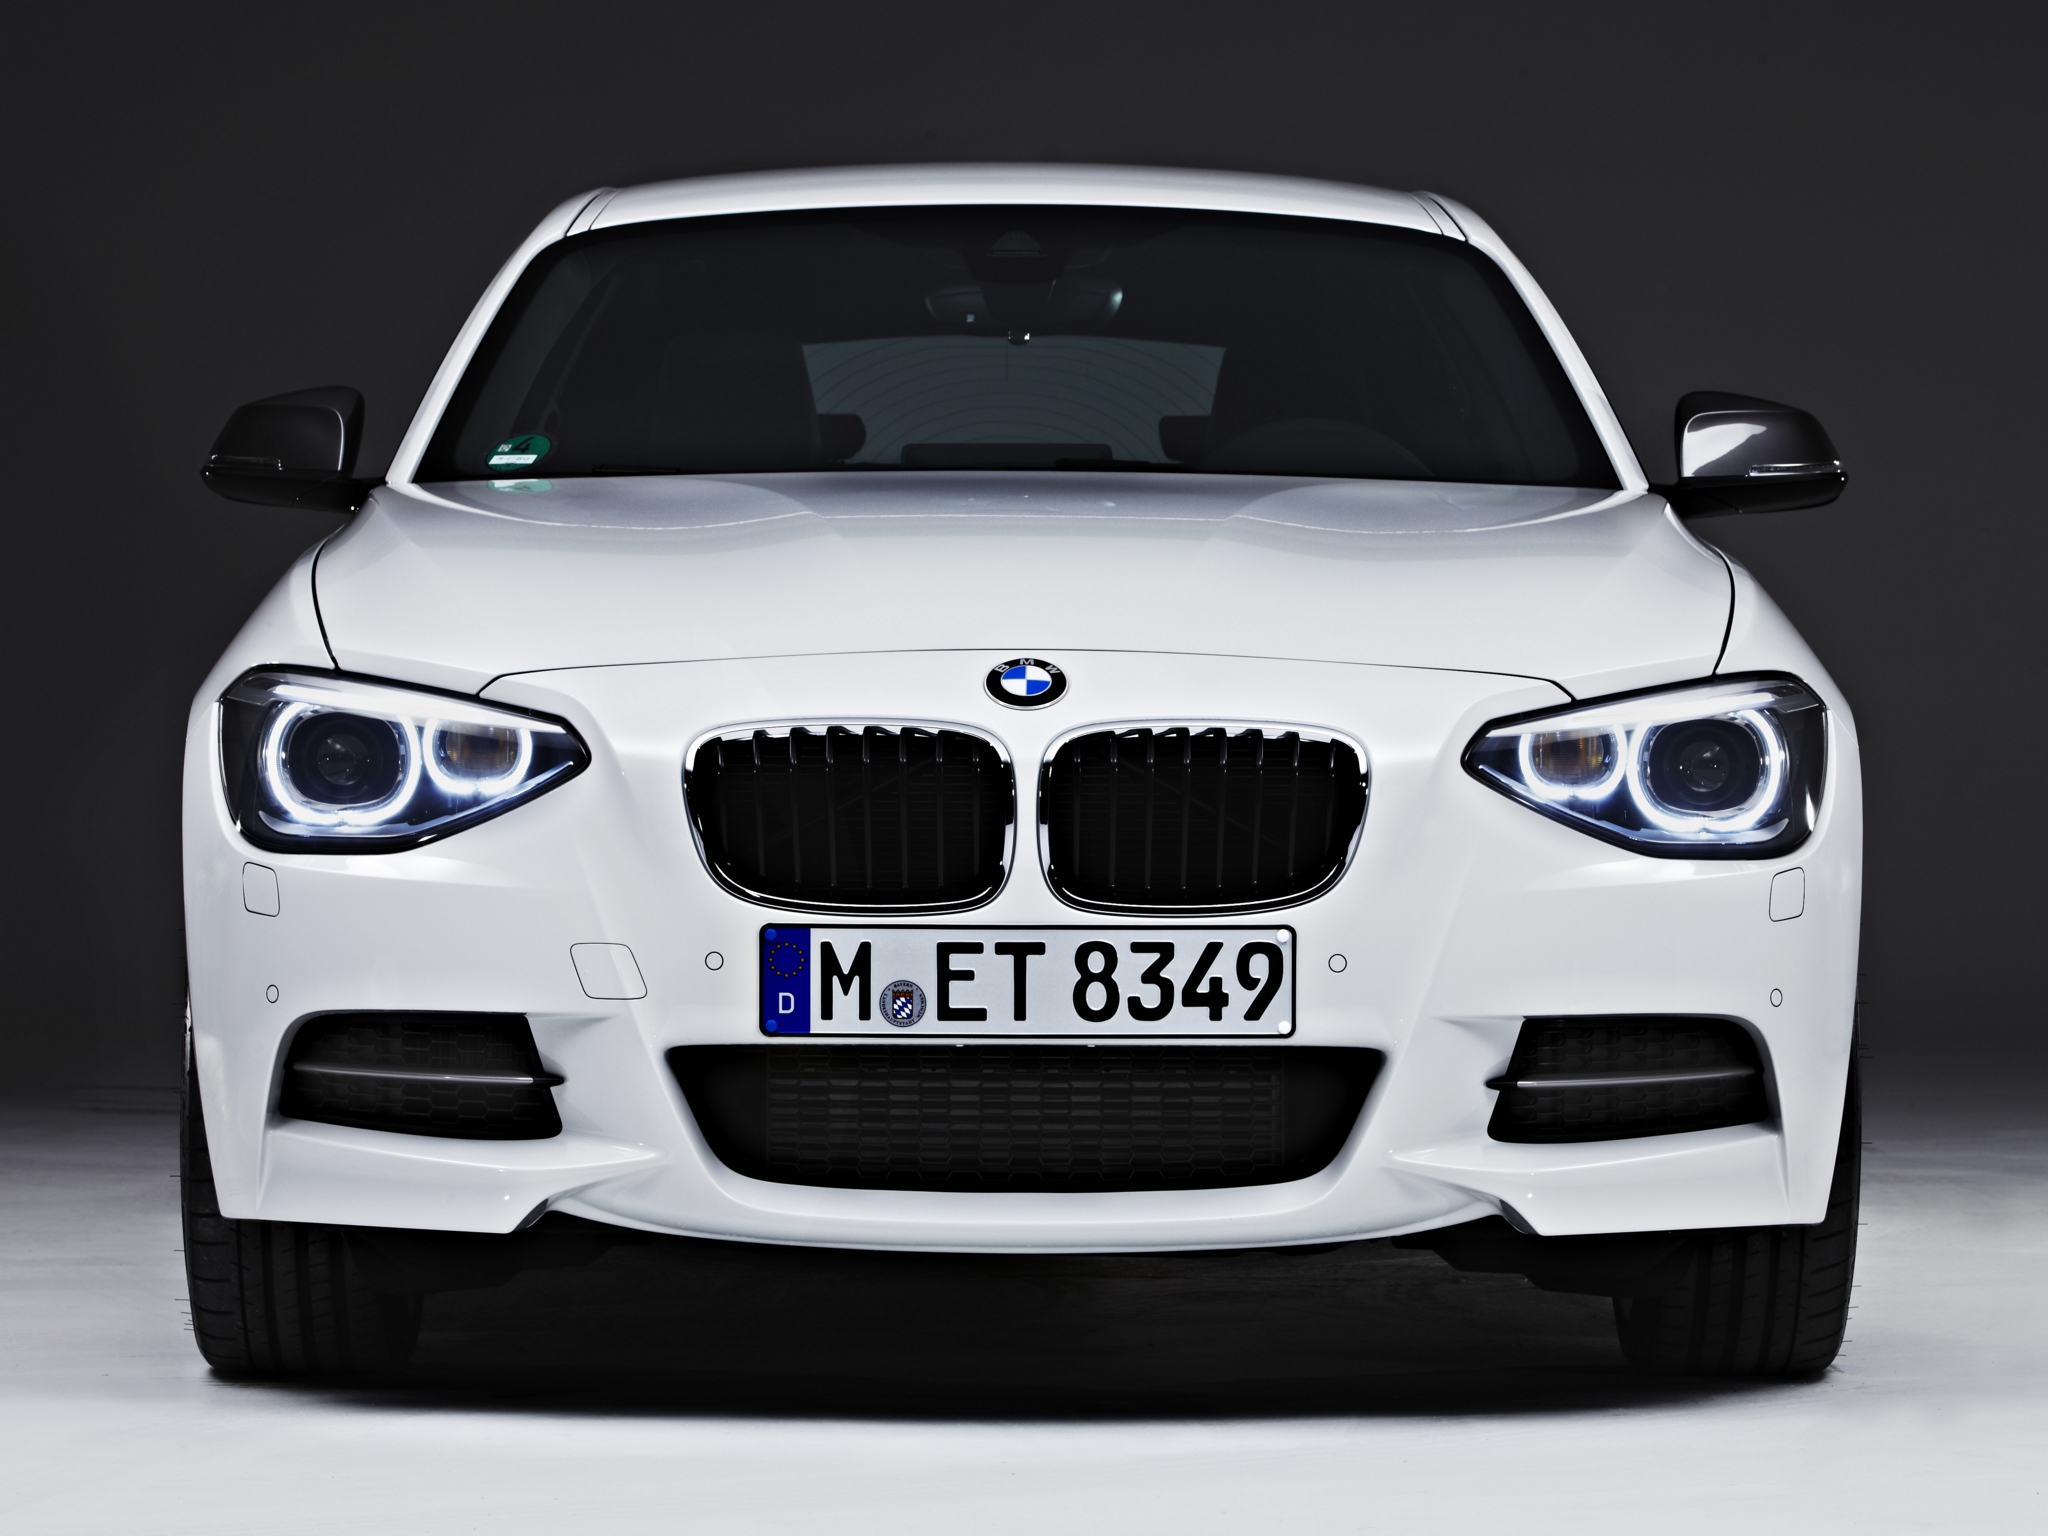 BMW M 135i 5 door F20 Wallpapers Car wallpapers HD 2048x1536